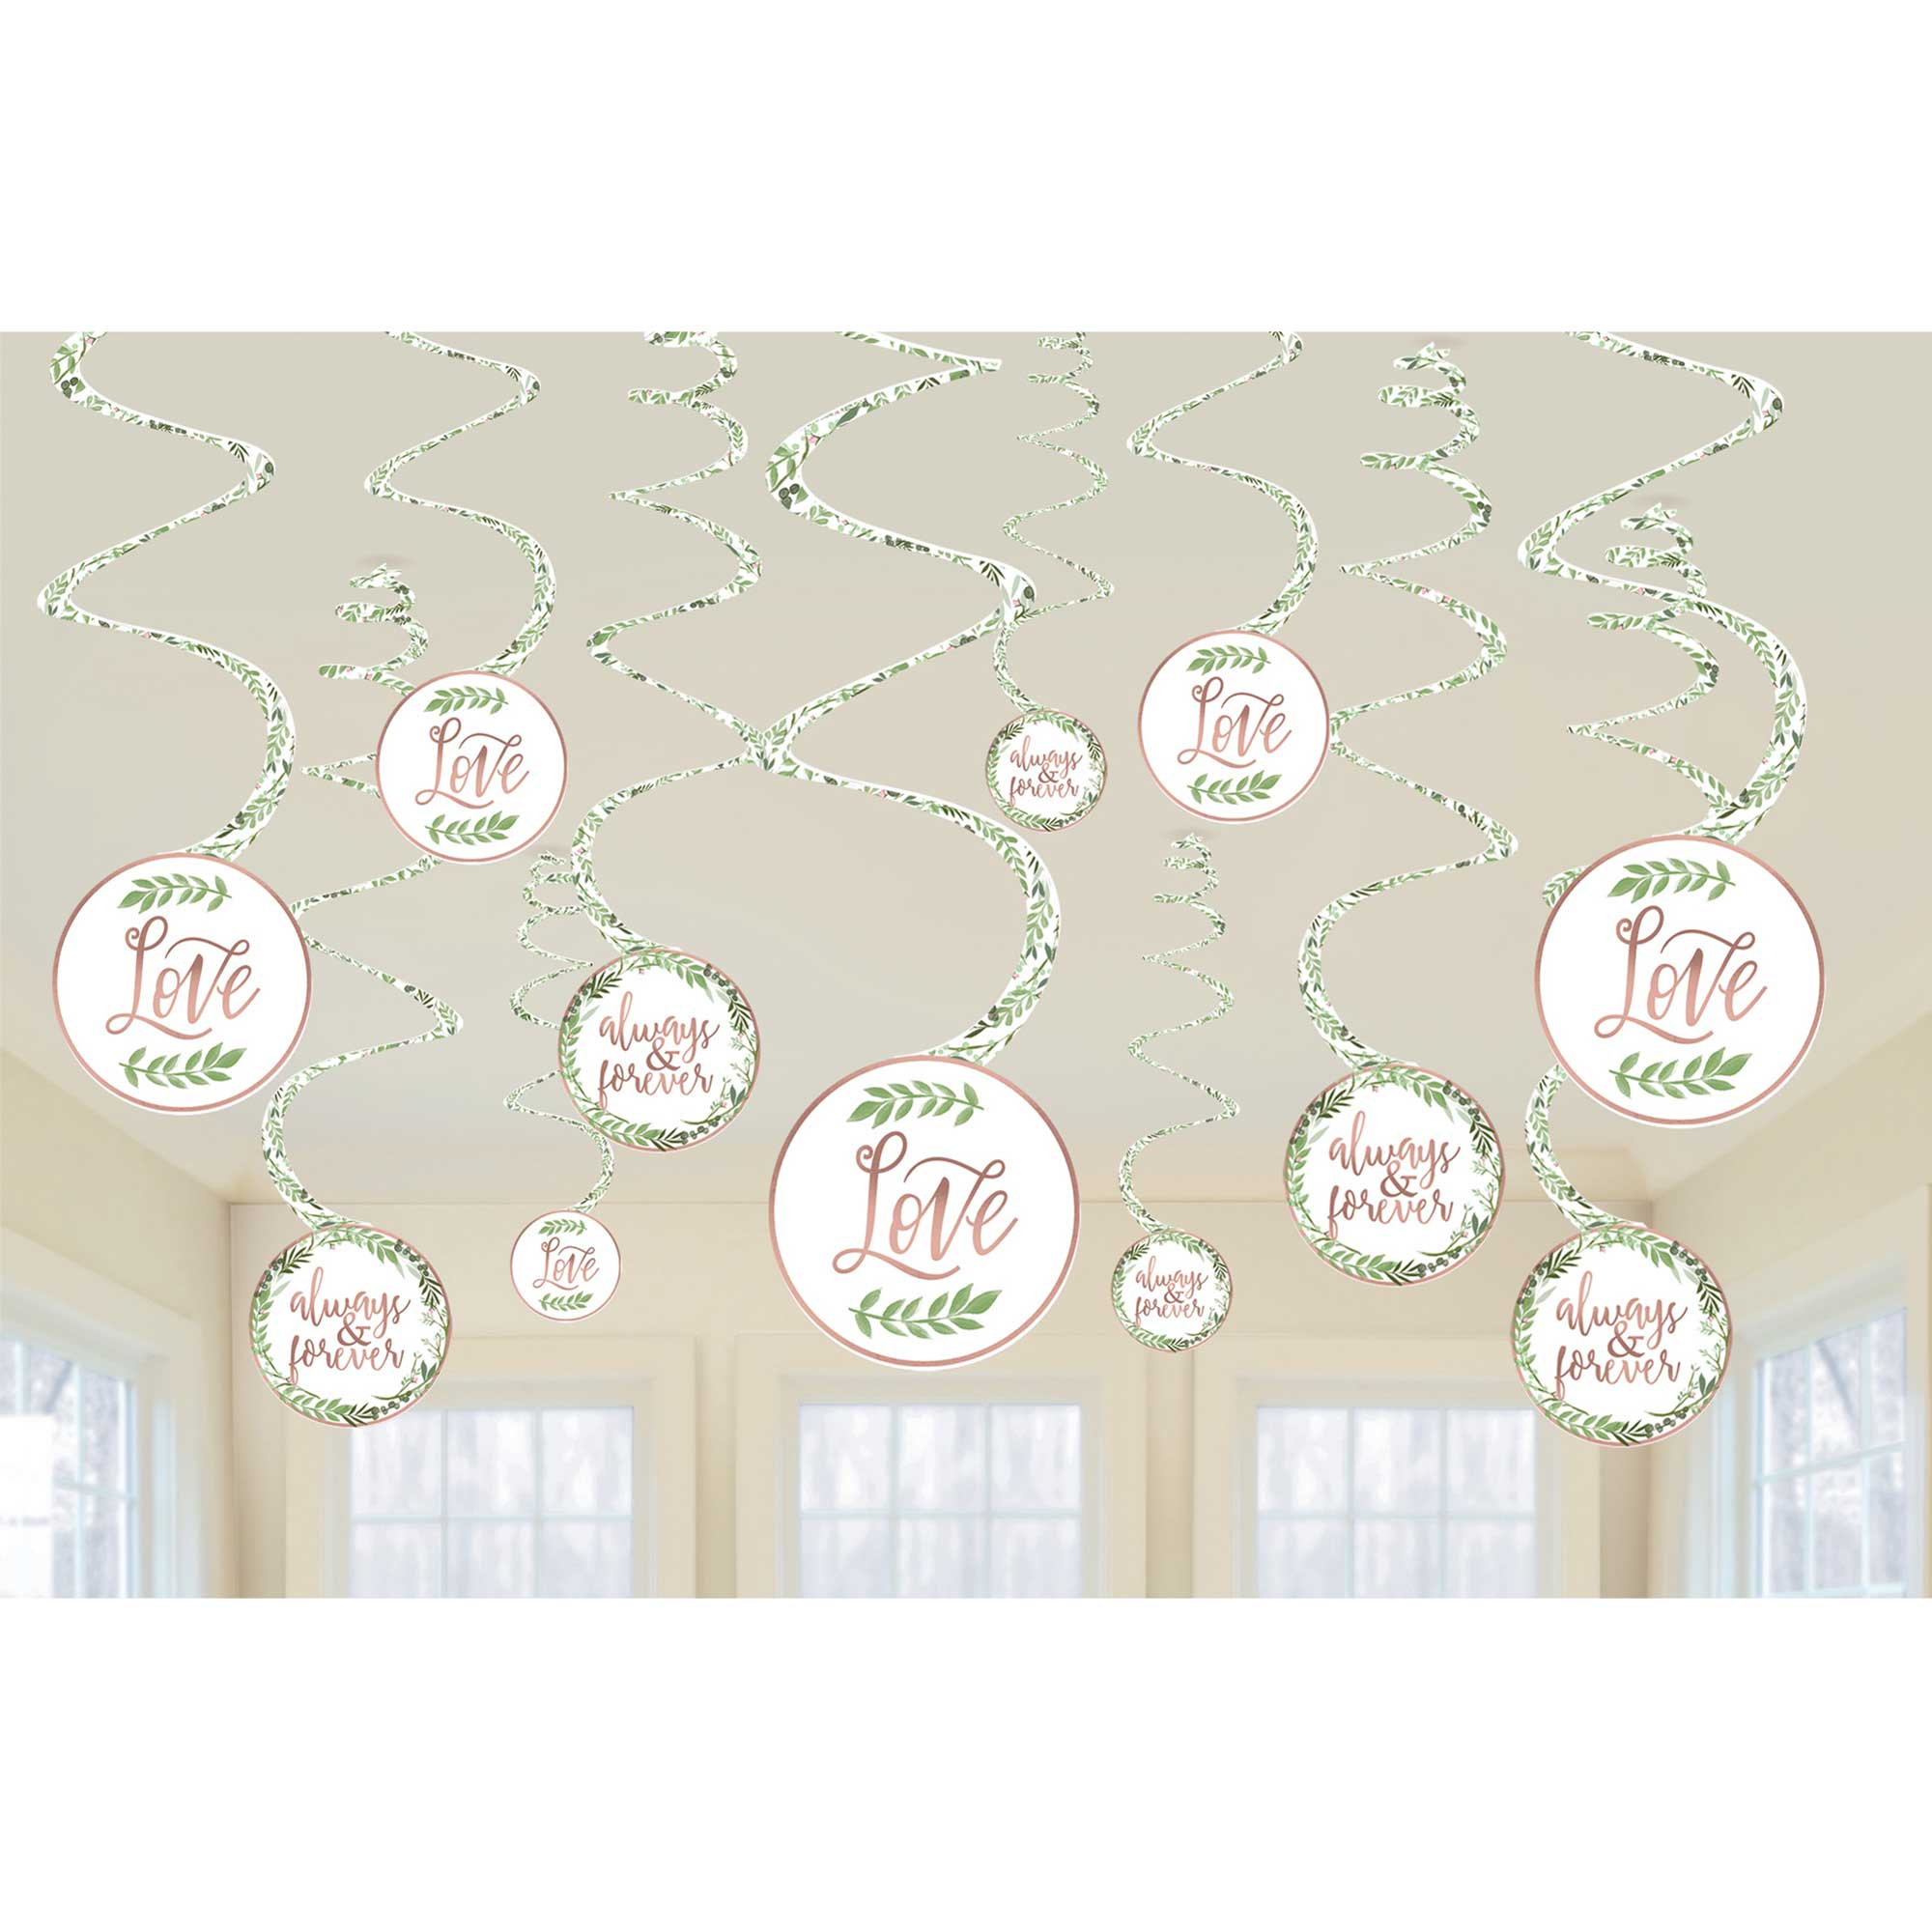 Love and Leaves Hanging Spiral Decorations Value Pack